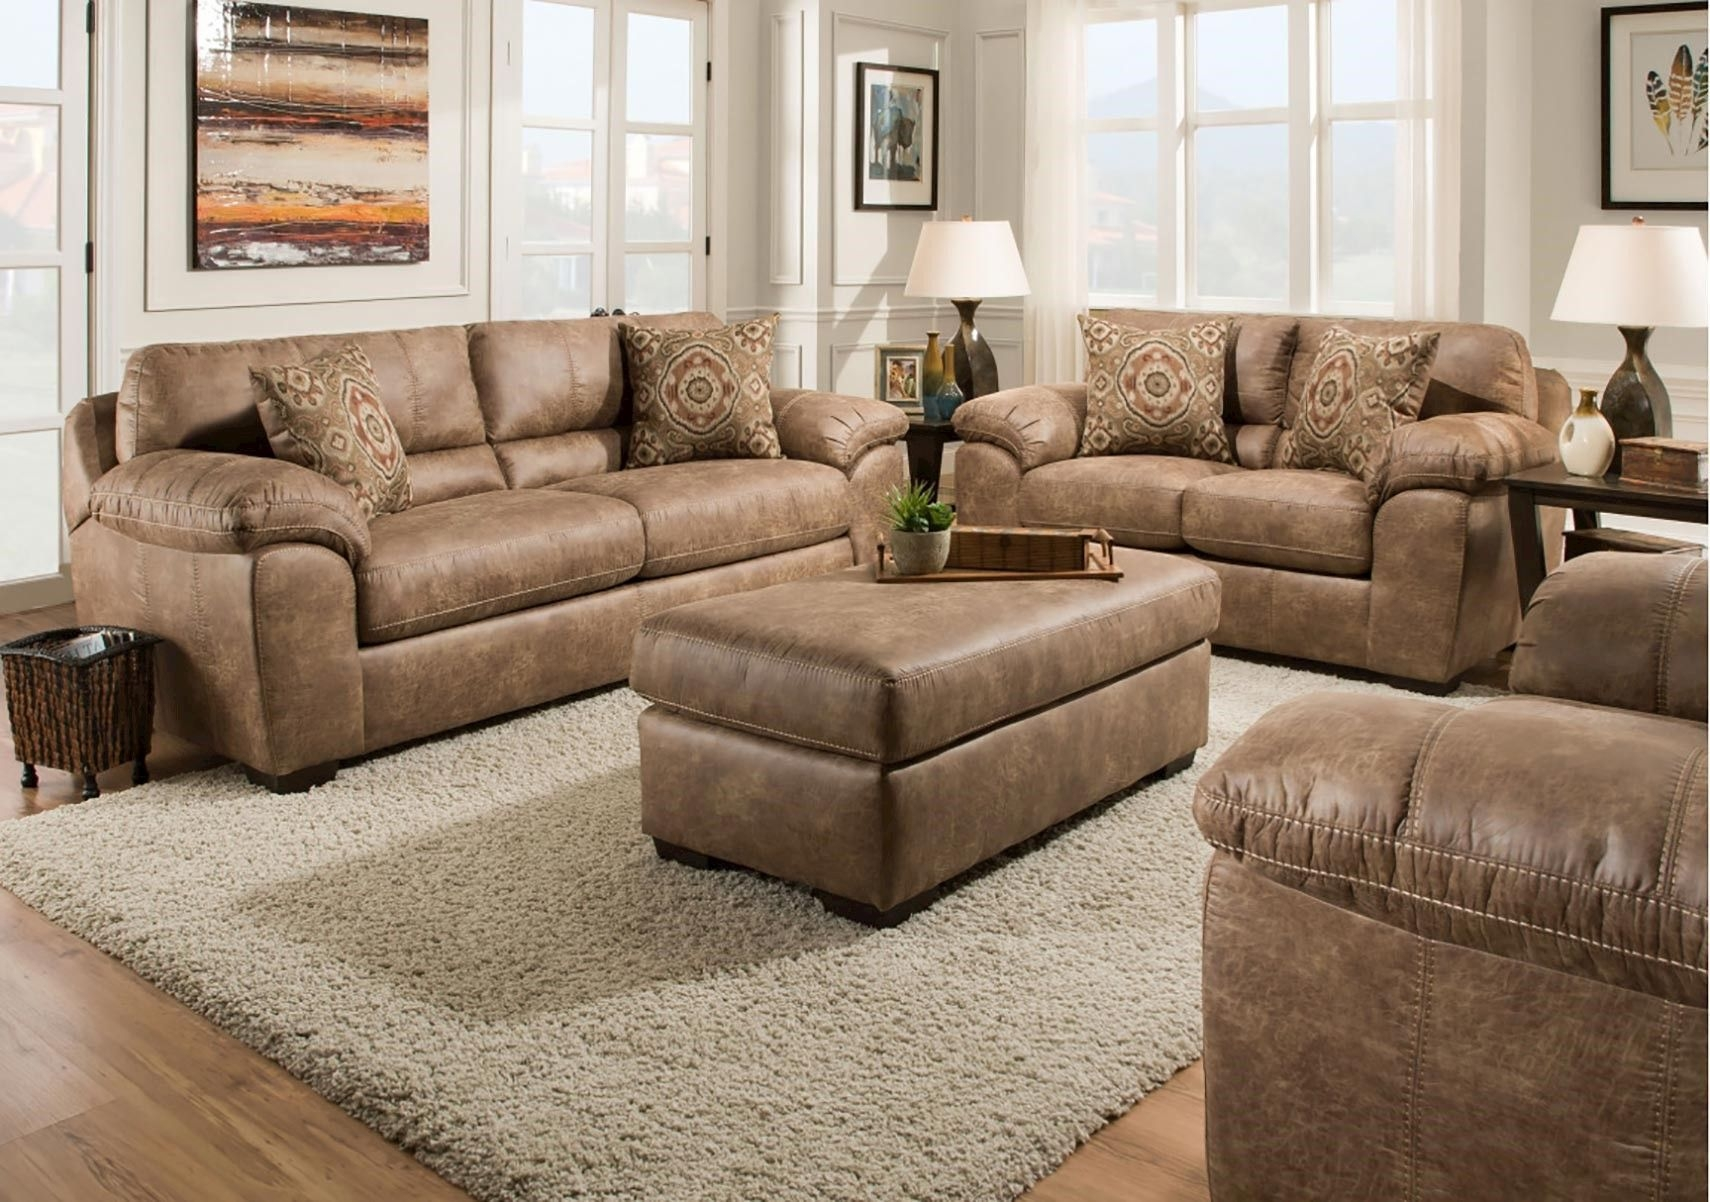 The Dump Living Room Sets  Coffee Tables Ideas